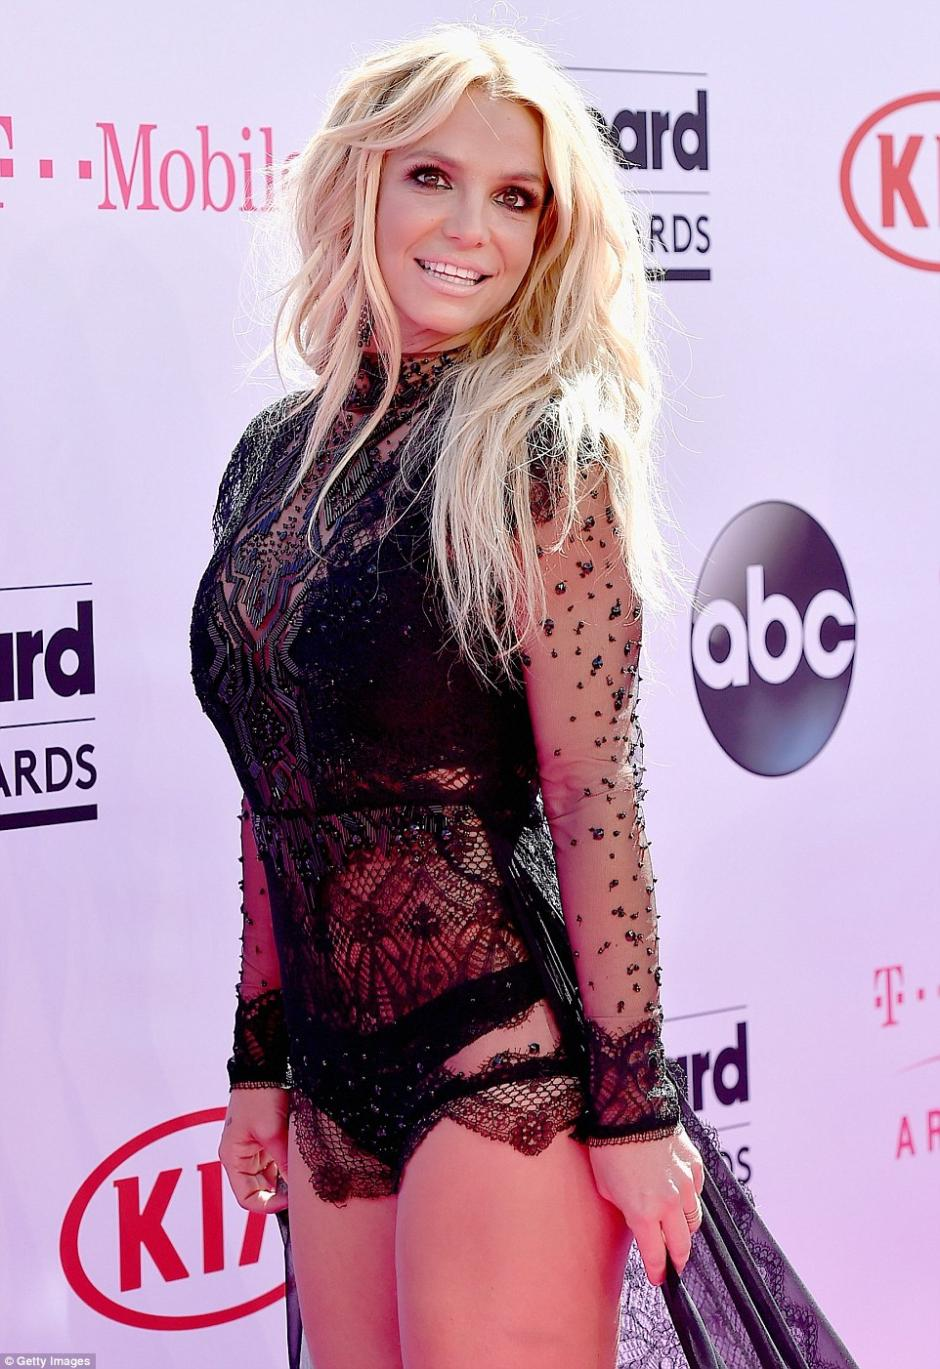 Spears sonrió para las cámaras. (Foto: Getty Images)